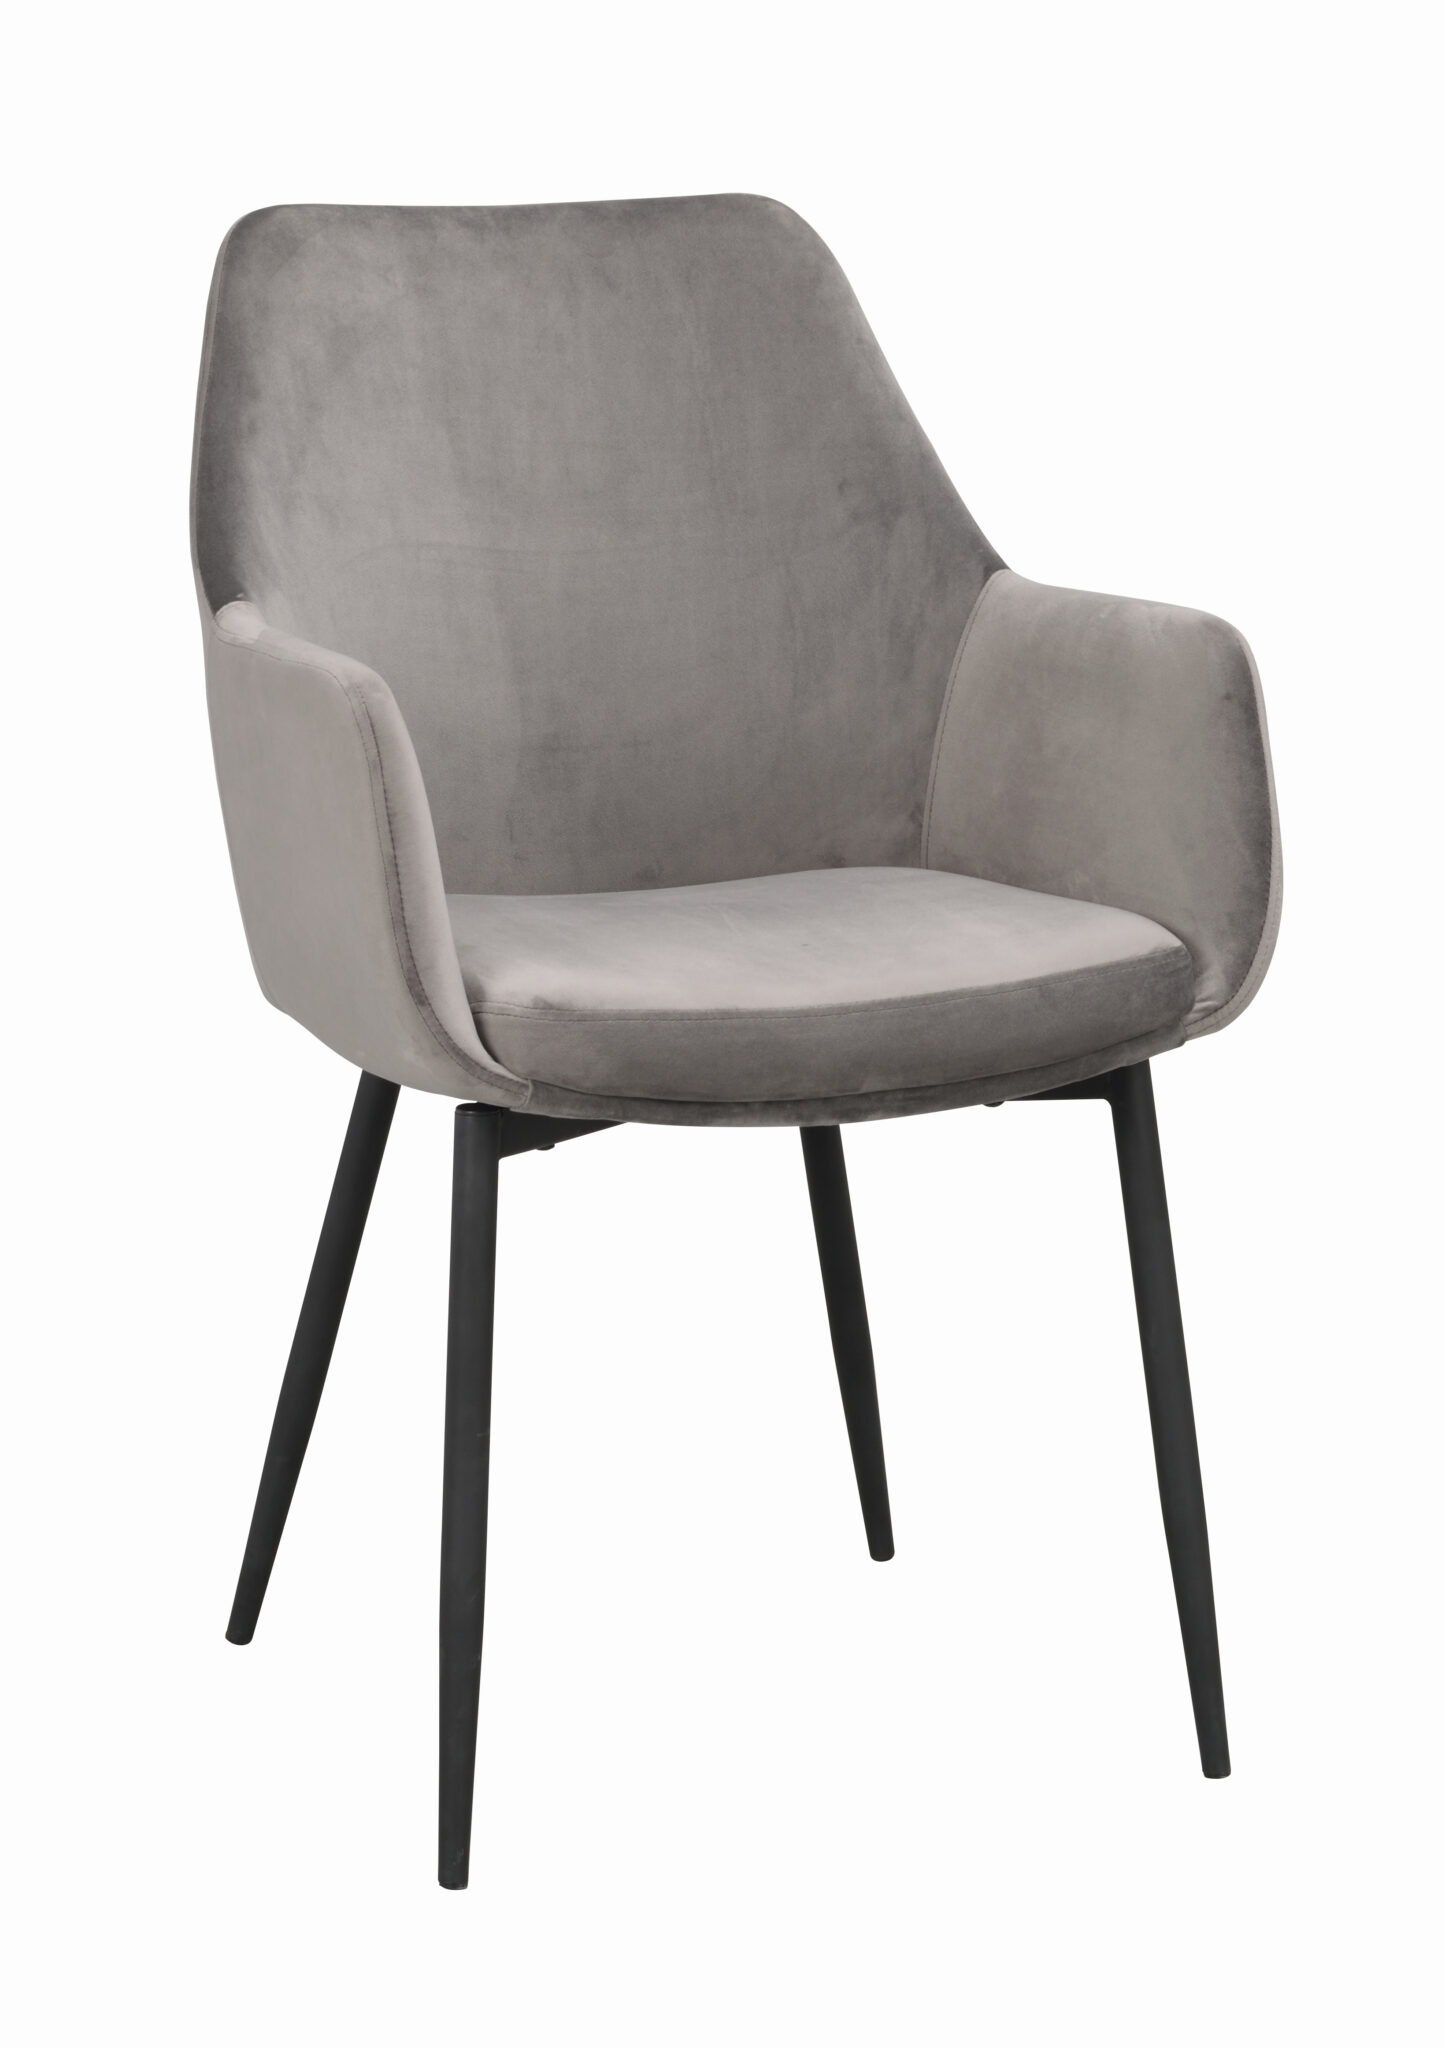 Ramsey arm chair Grey_black 110456 1